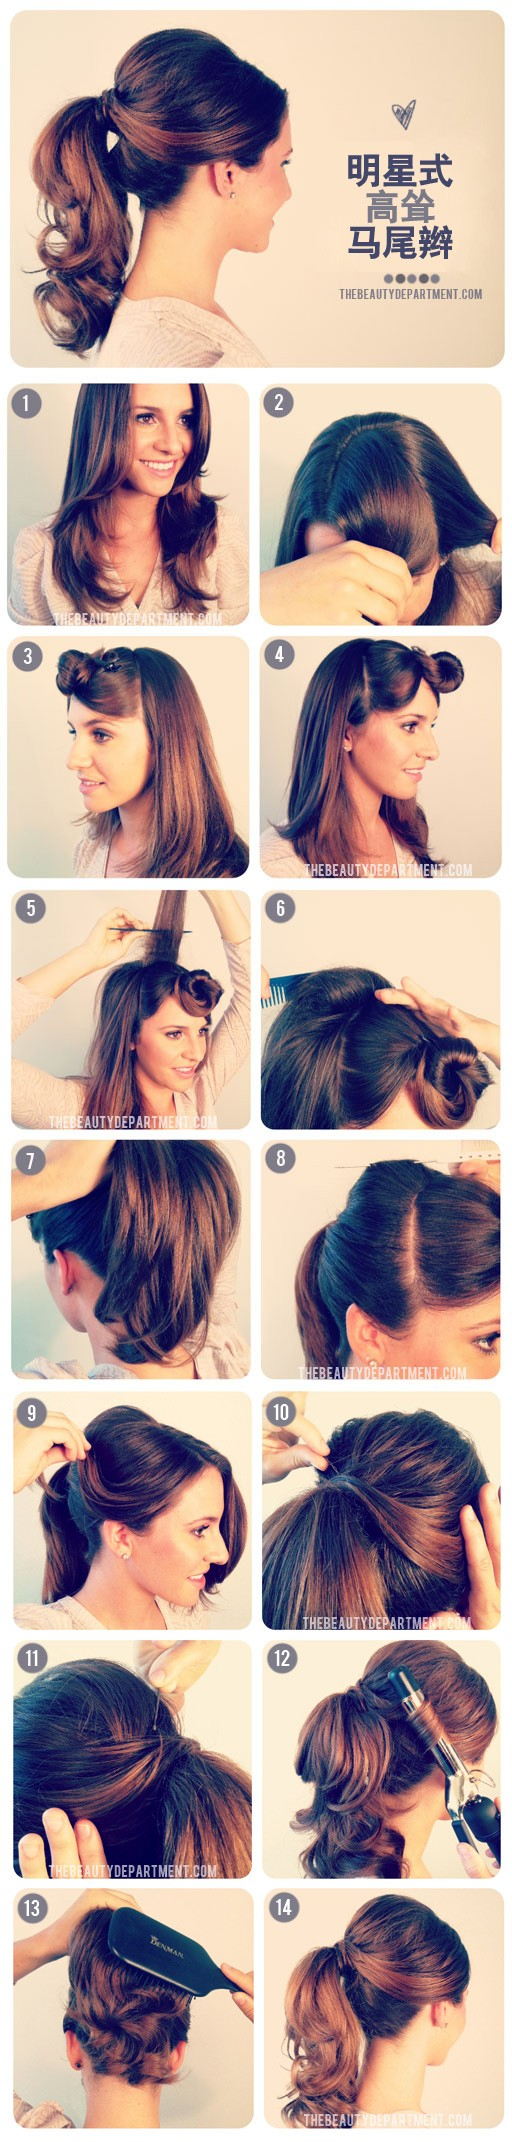 Ponytail things to wear pinterest ponytail hair style and makeup